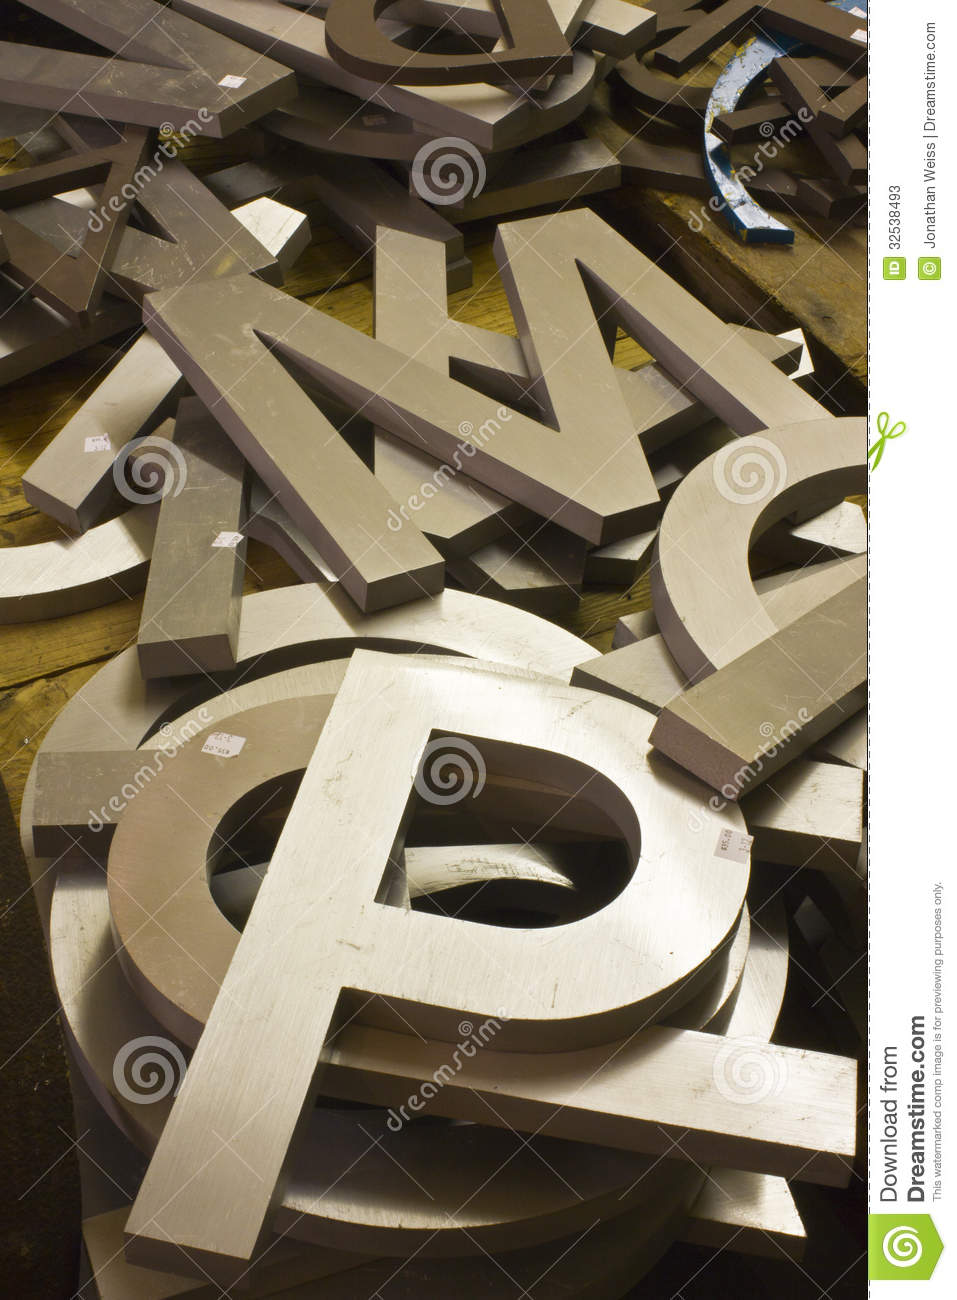 Steel Letters For Sale A Pile Of Alphabet Letters For Sale Stock Image  Image 32538493